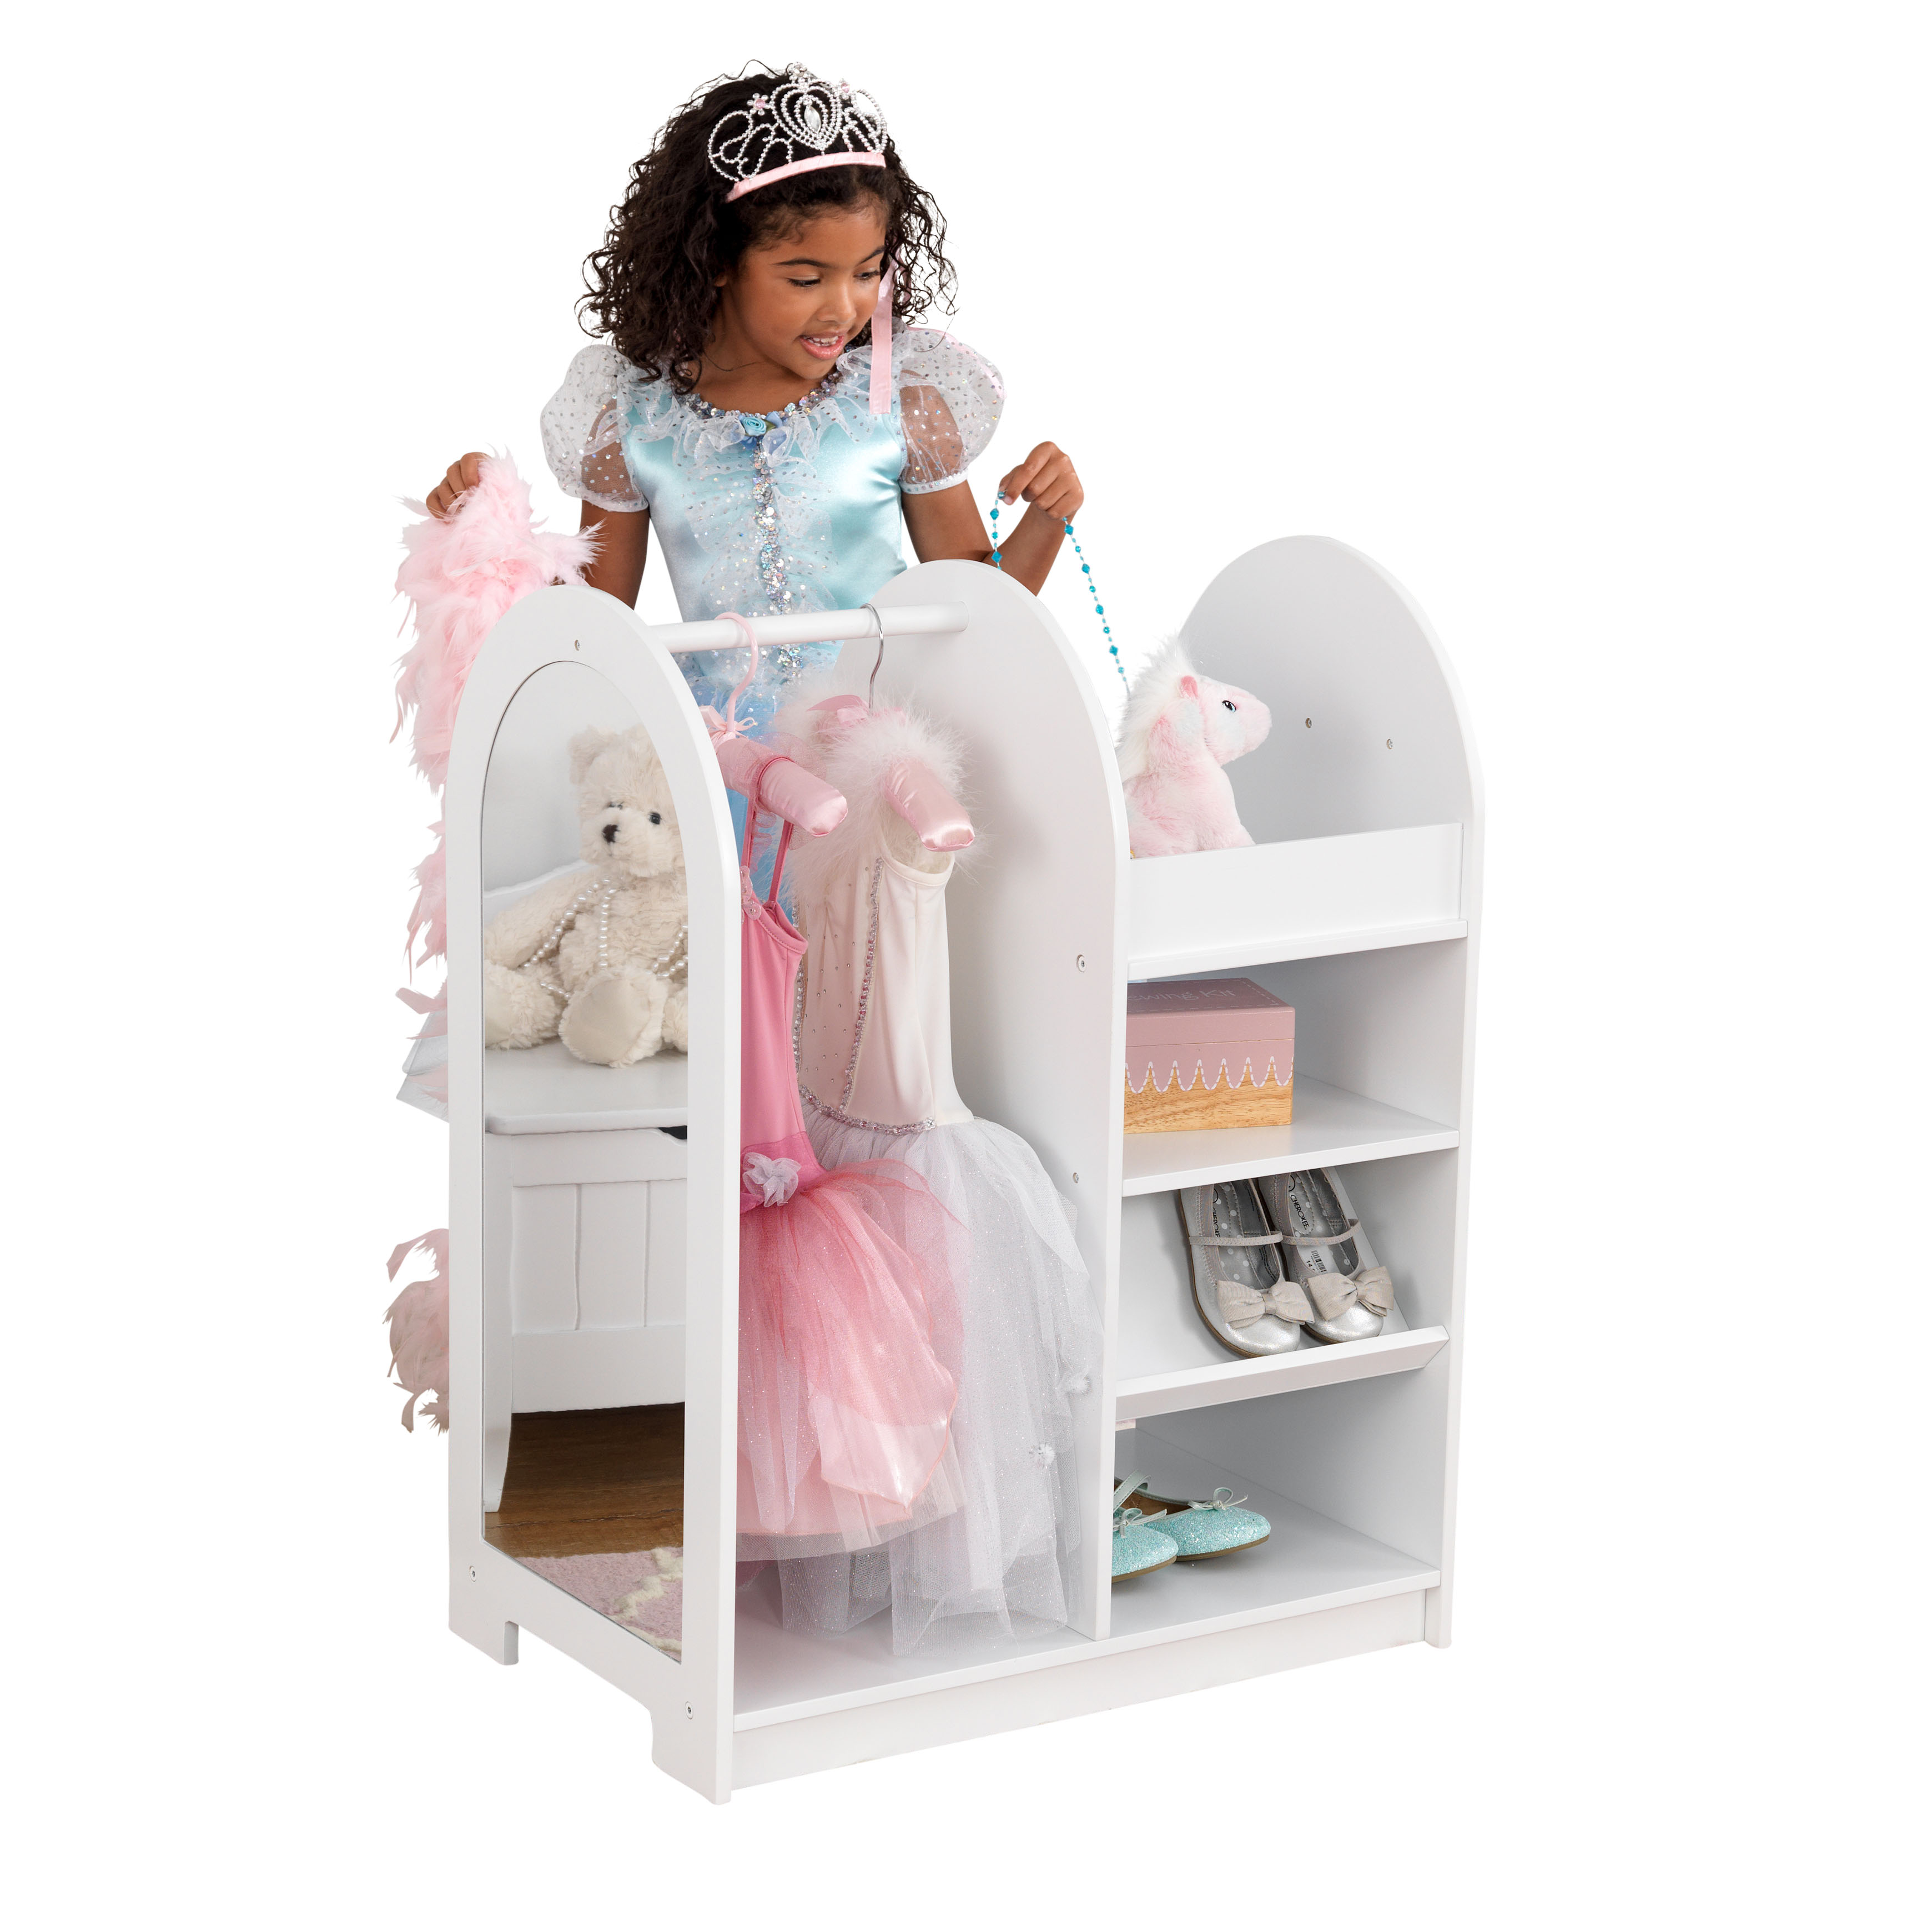 ... White KidKraft Letu0027s Play Dress Up Unit, White